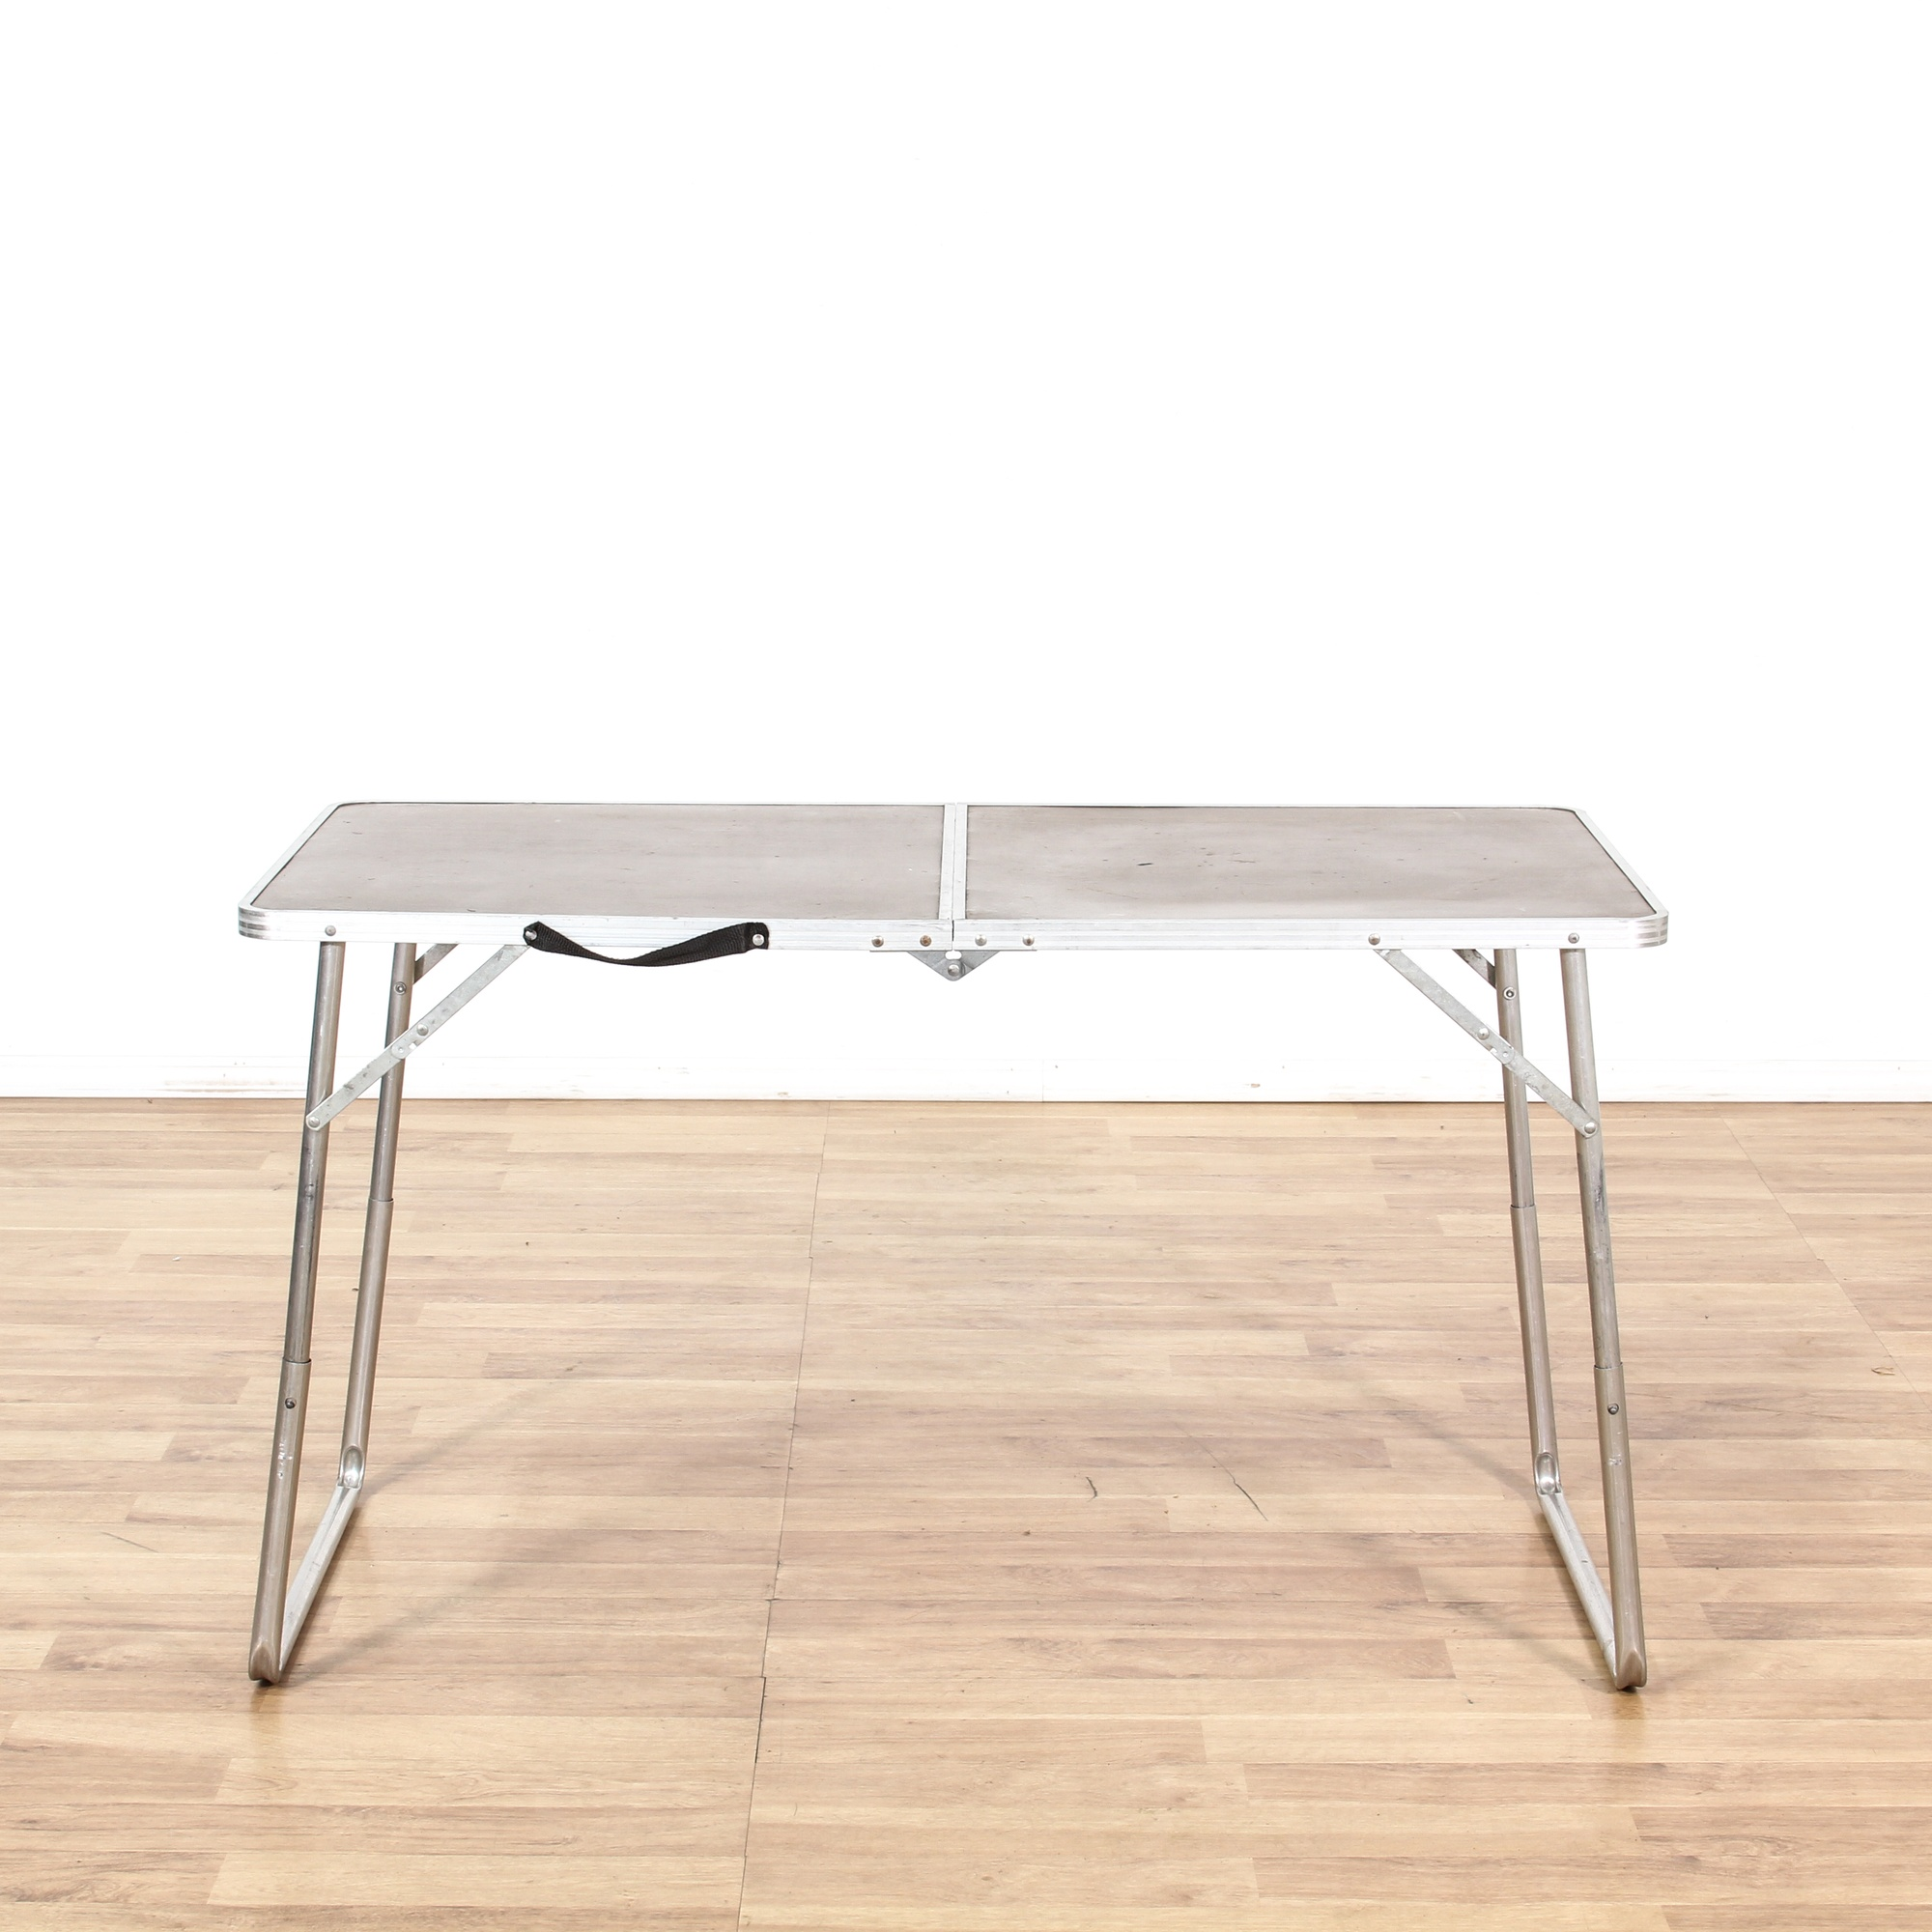 Small Folding Utility Table